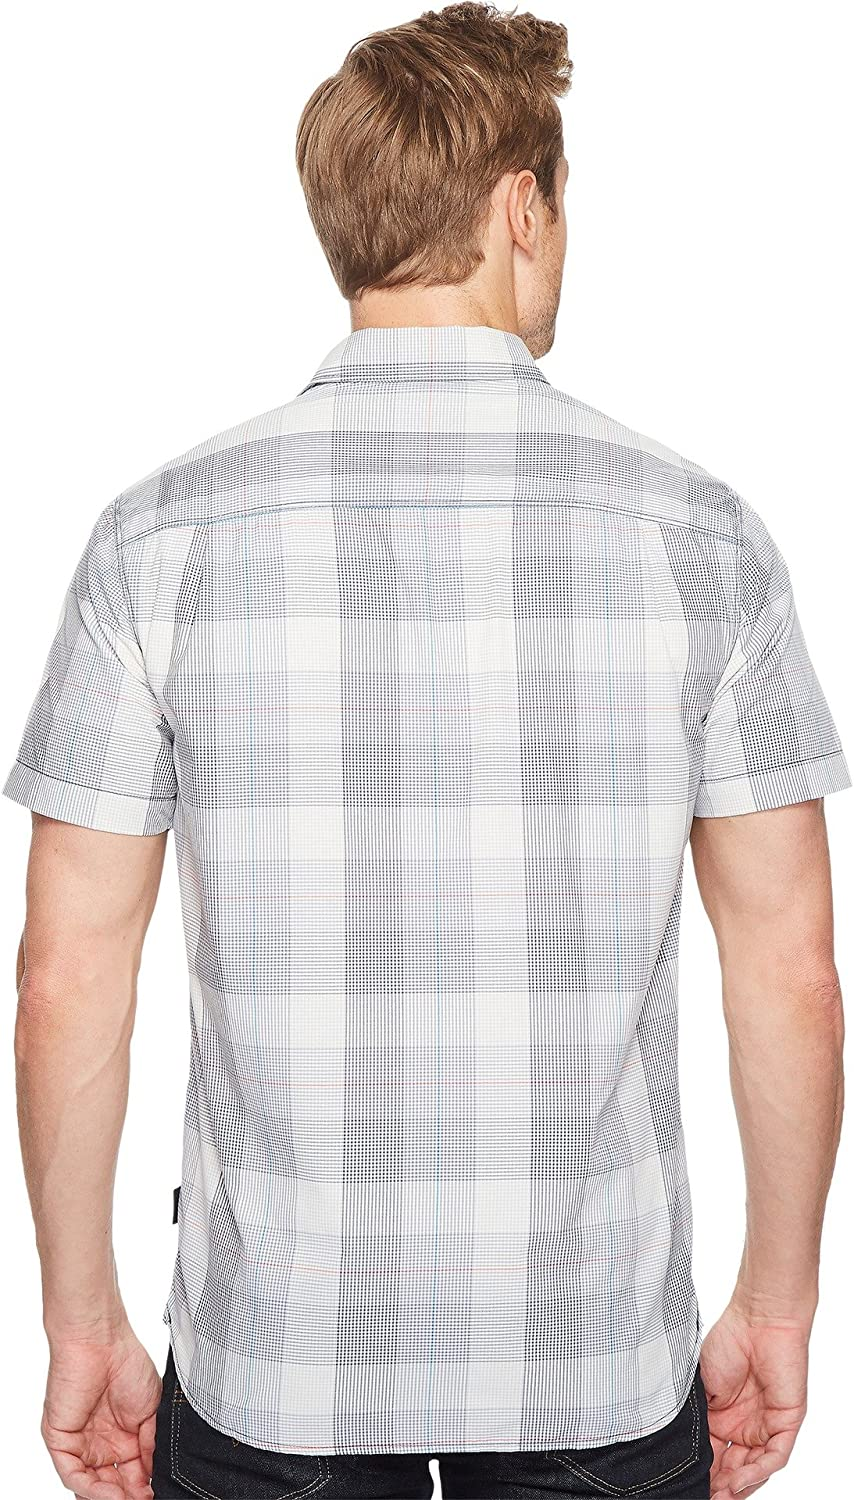 8cf990d6e The North Face Men's Short Sleeve Expedition Shirt Urban Navy Plaid ...